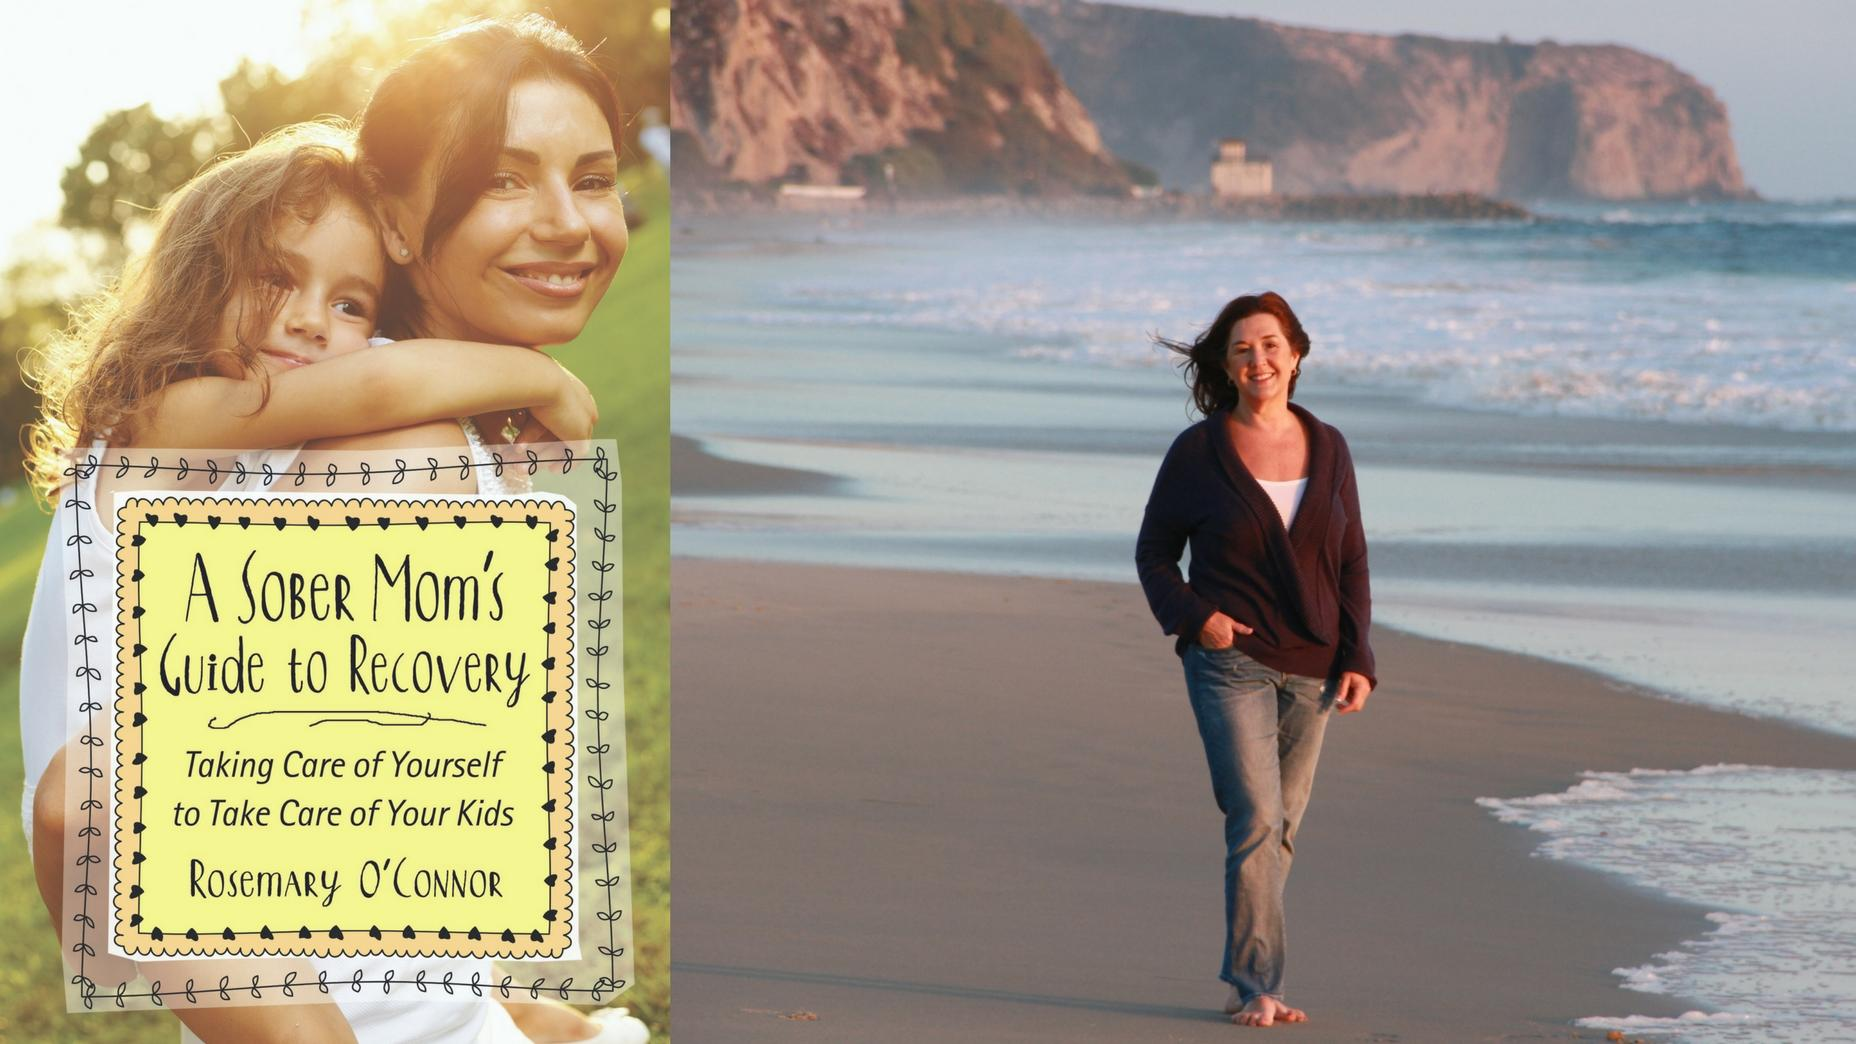 Sober Mom's Guide to Recovery